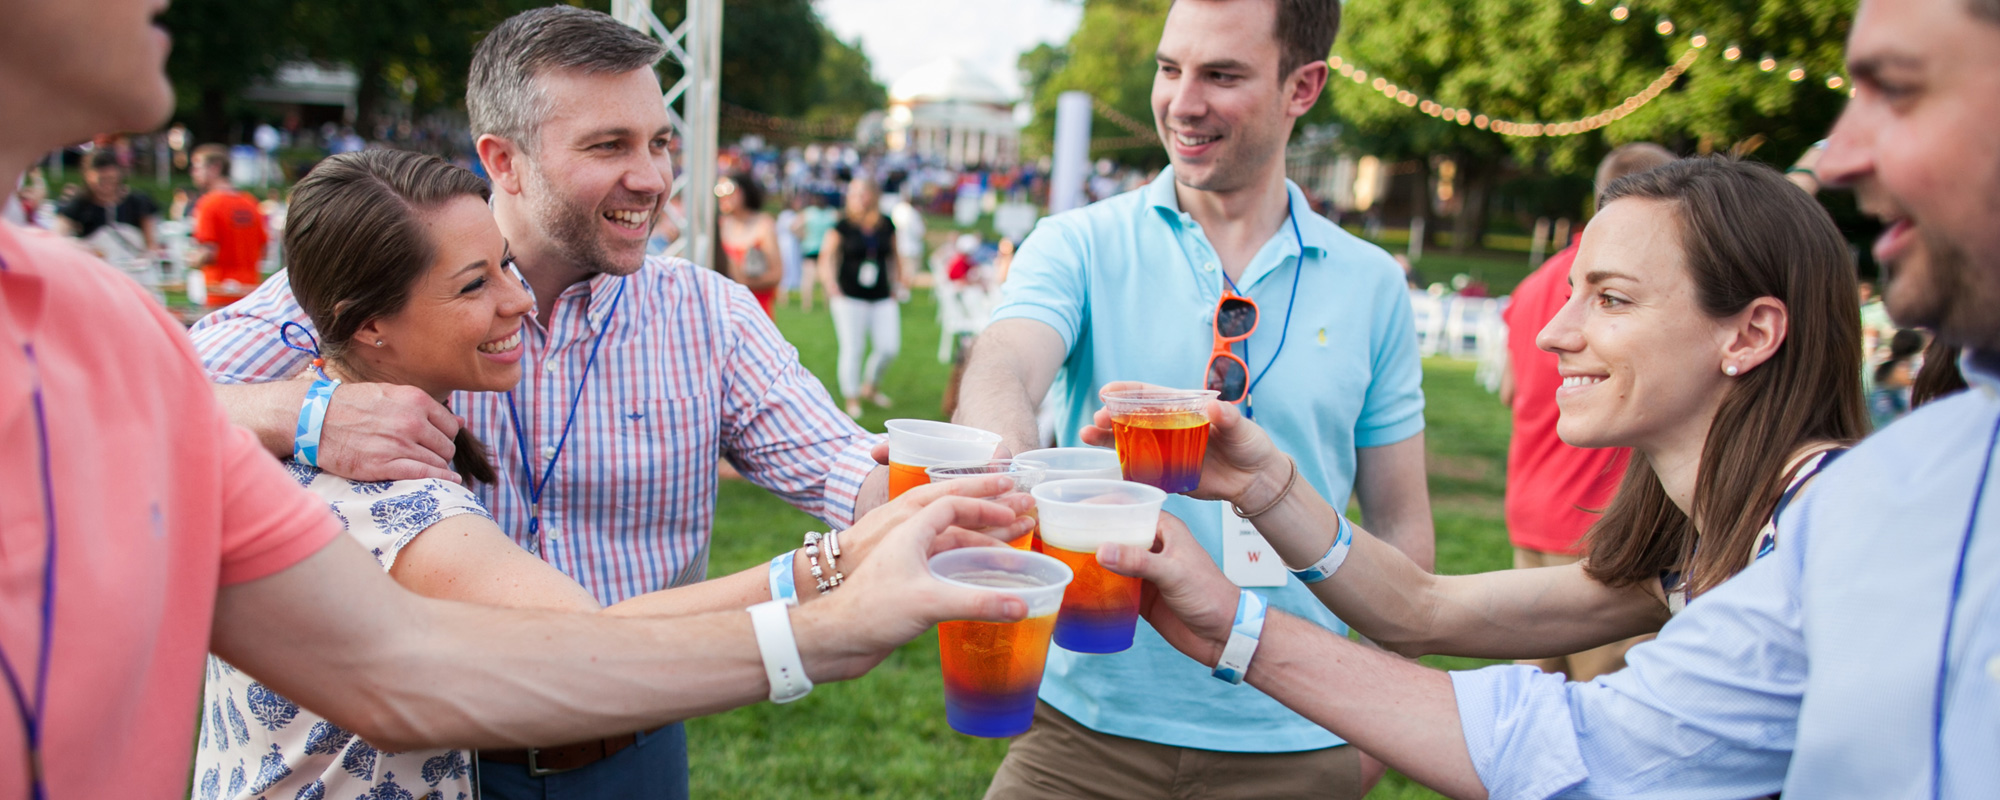 Cheers at Reunions